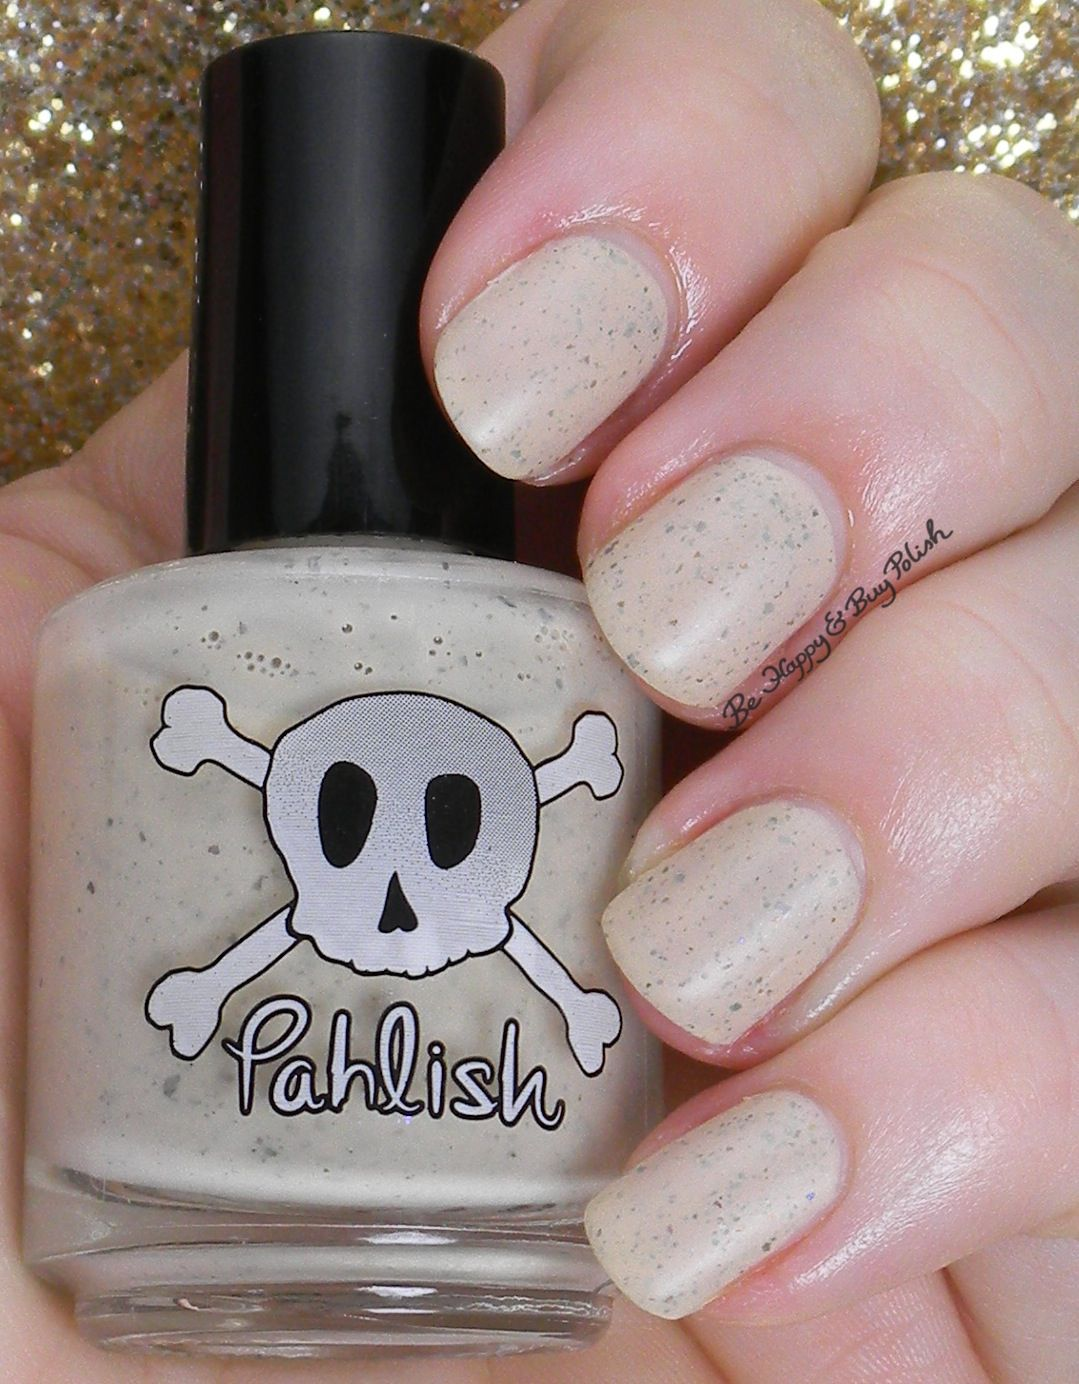 Pahlish Buccaneers and Buried Gold Nail Polish collection